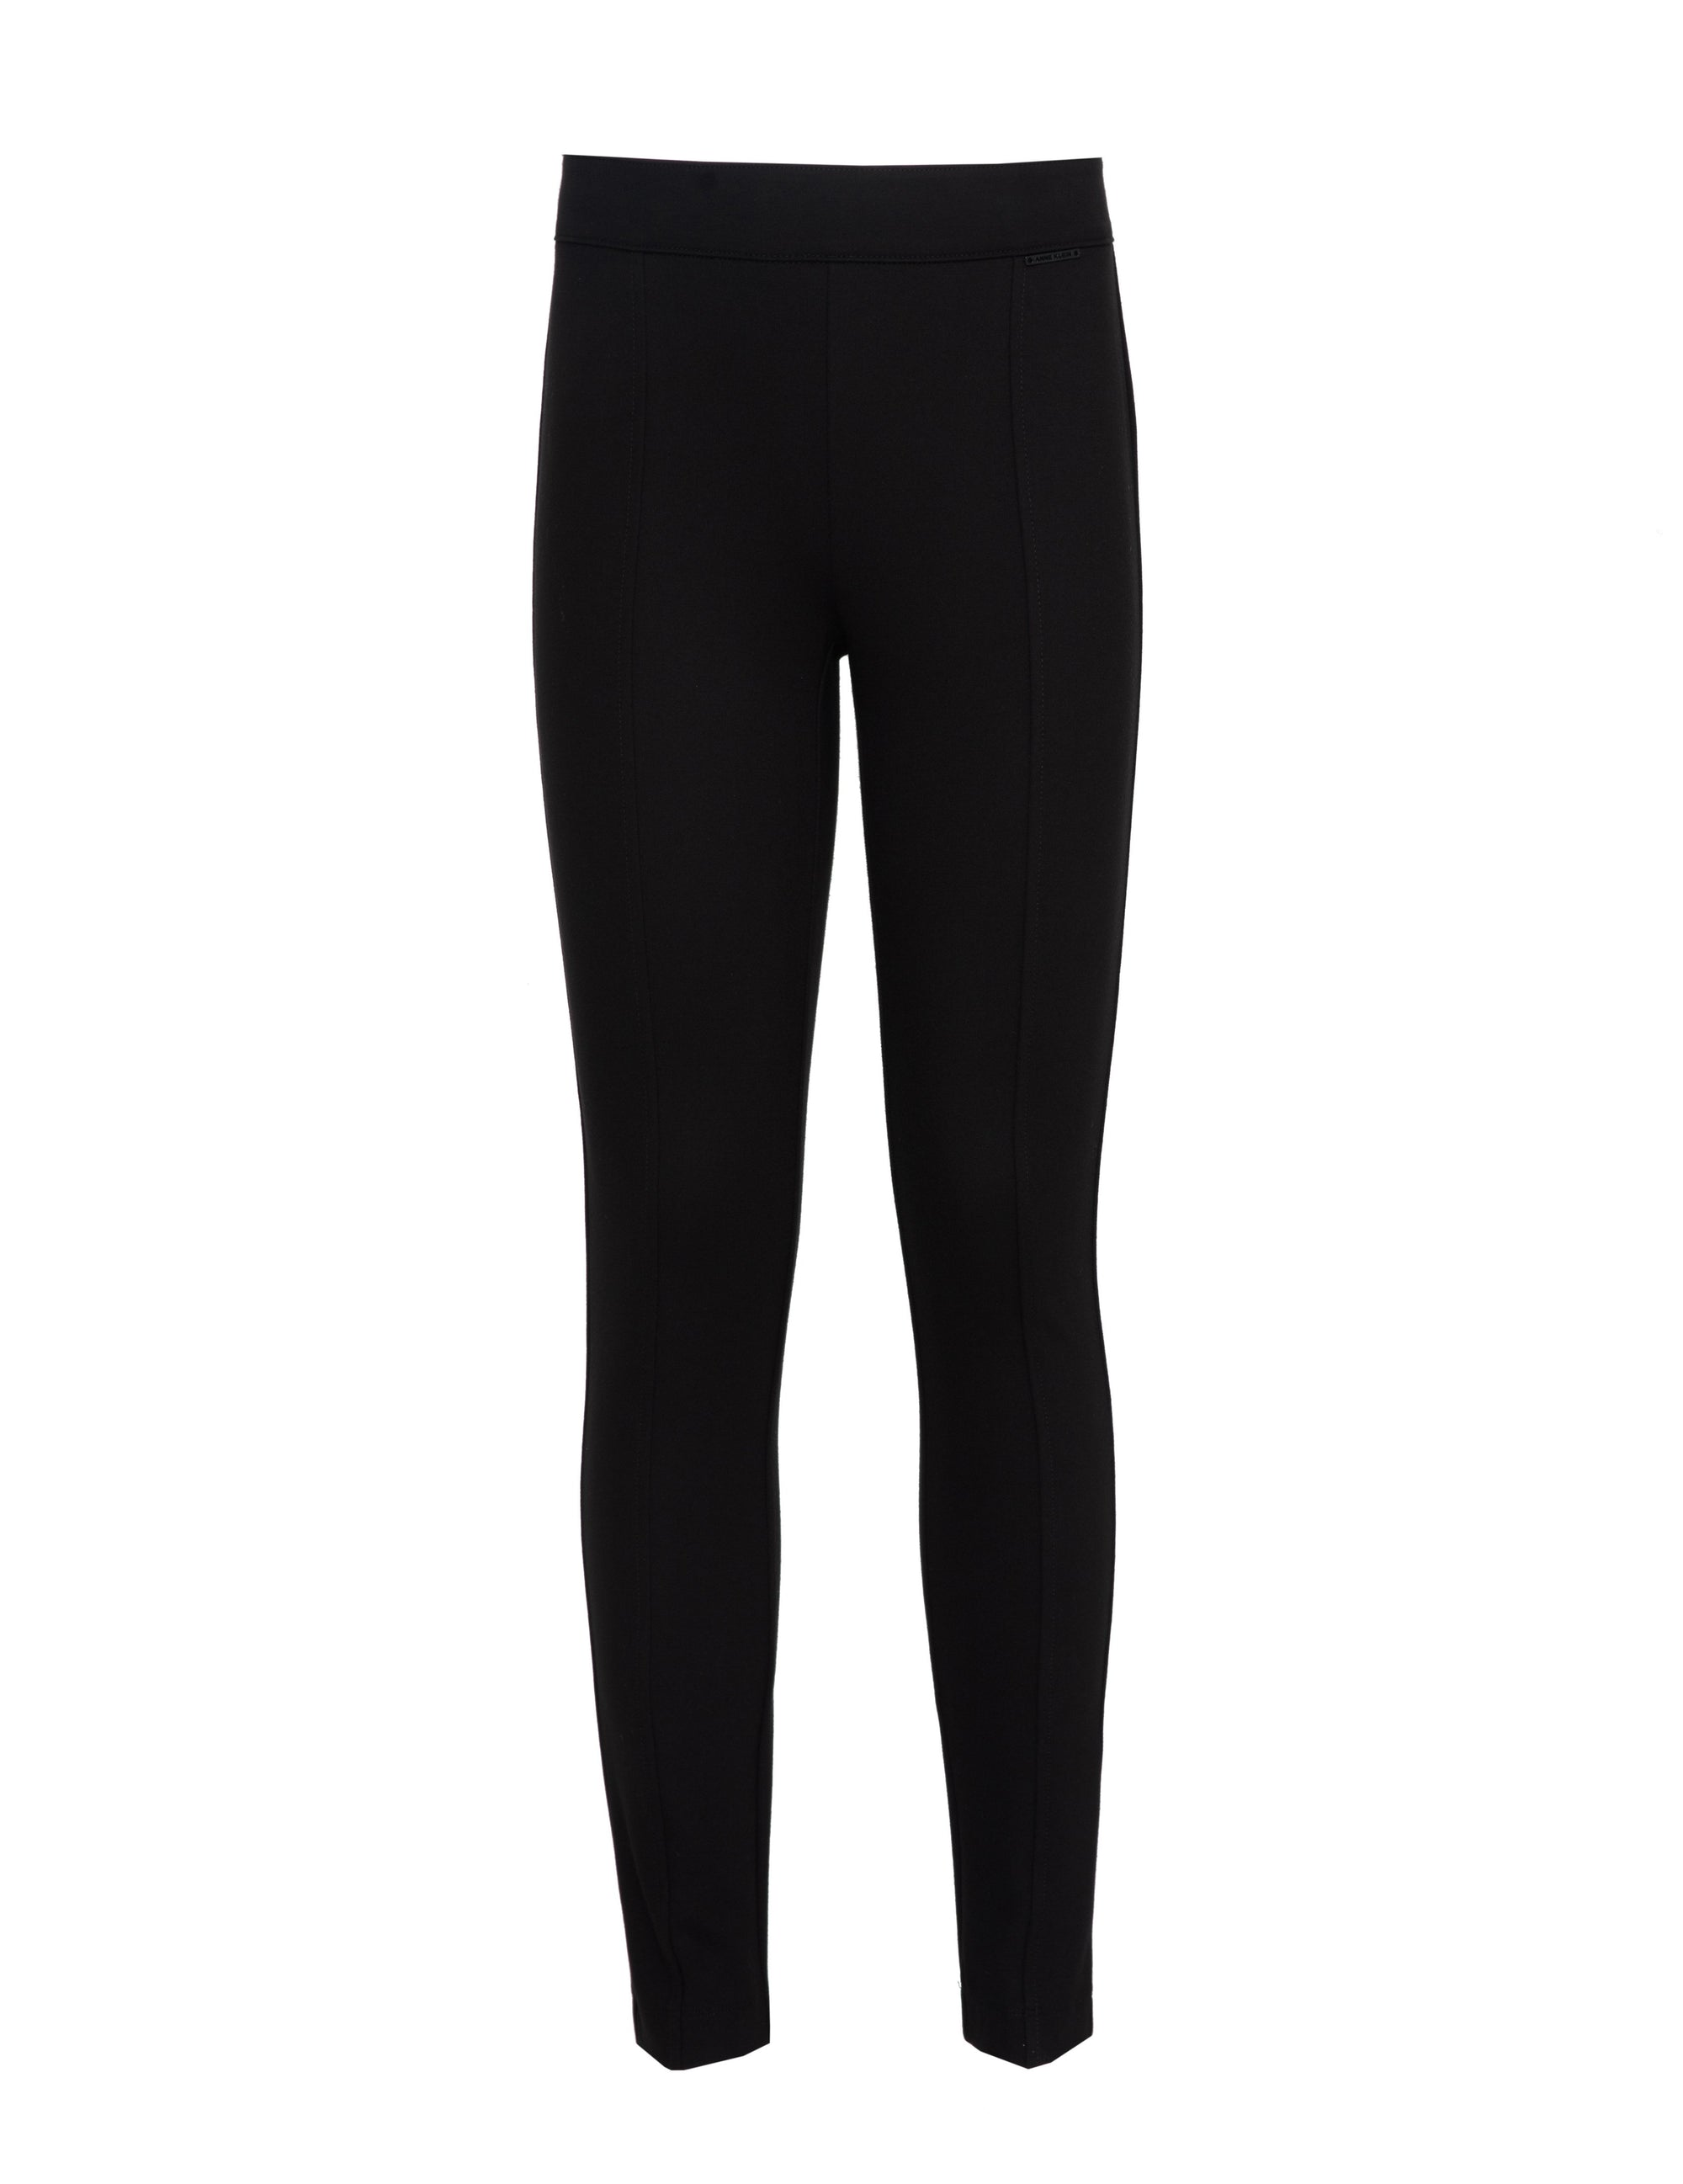 Anne Klein Black Slim Leg Compression Pant